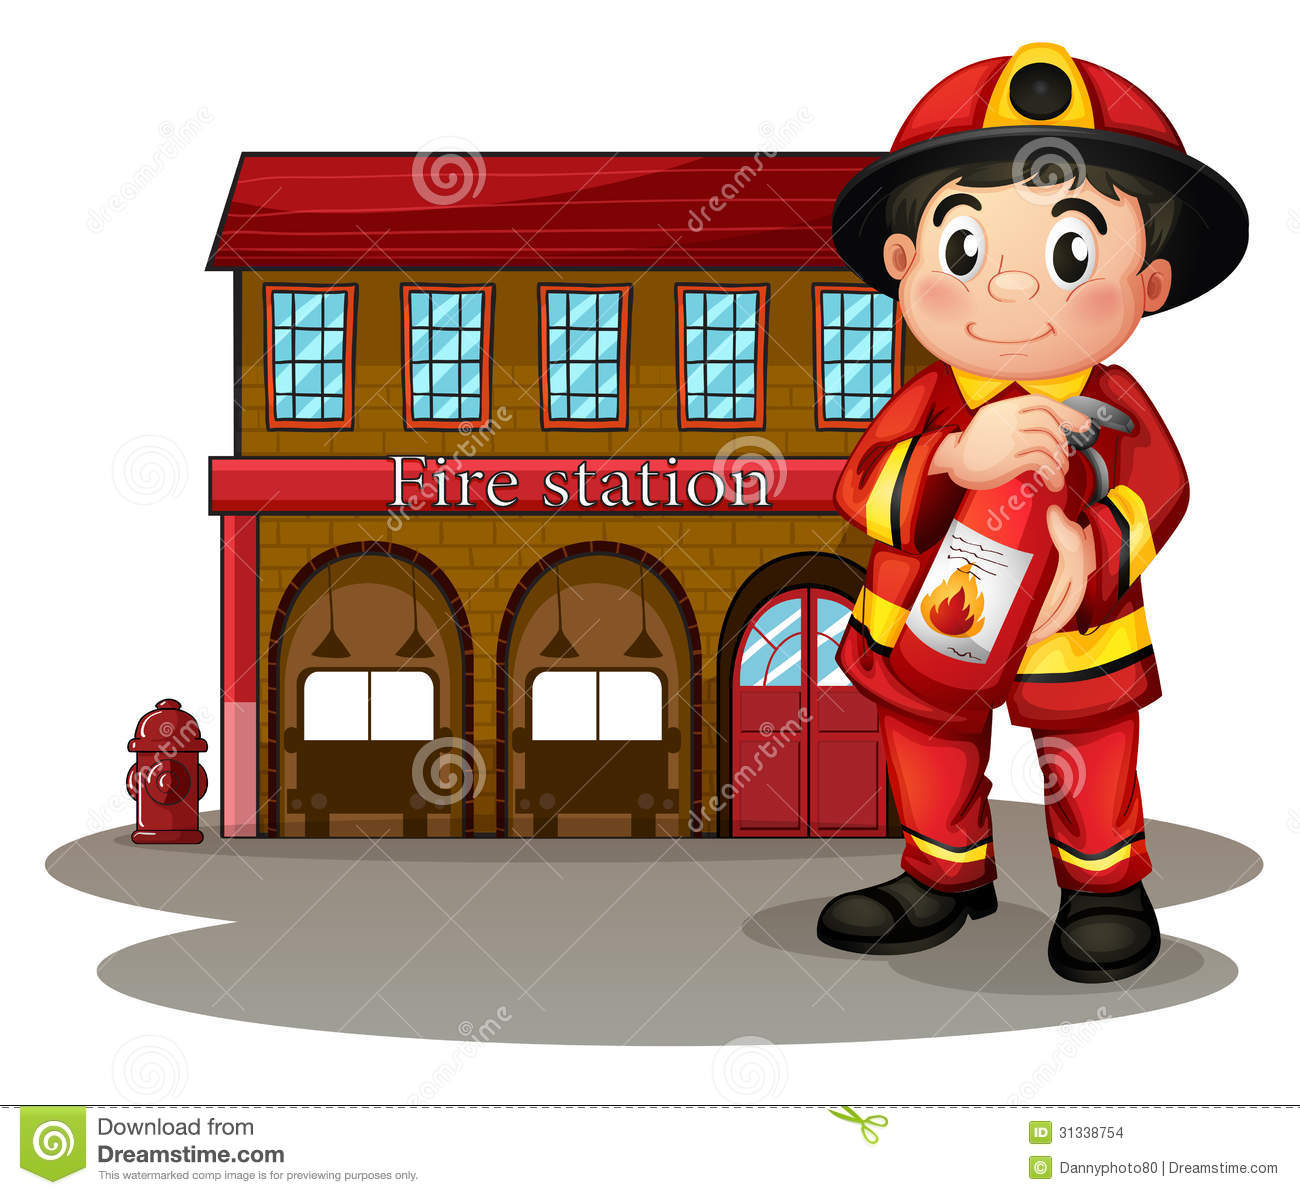 hight resolution of a fireman in front of a fire station holding a fire extinguisher